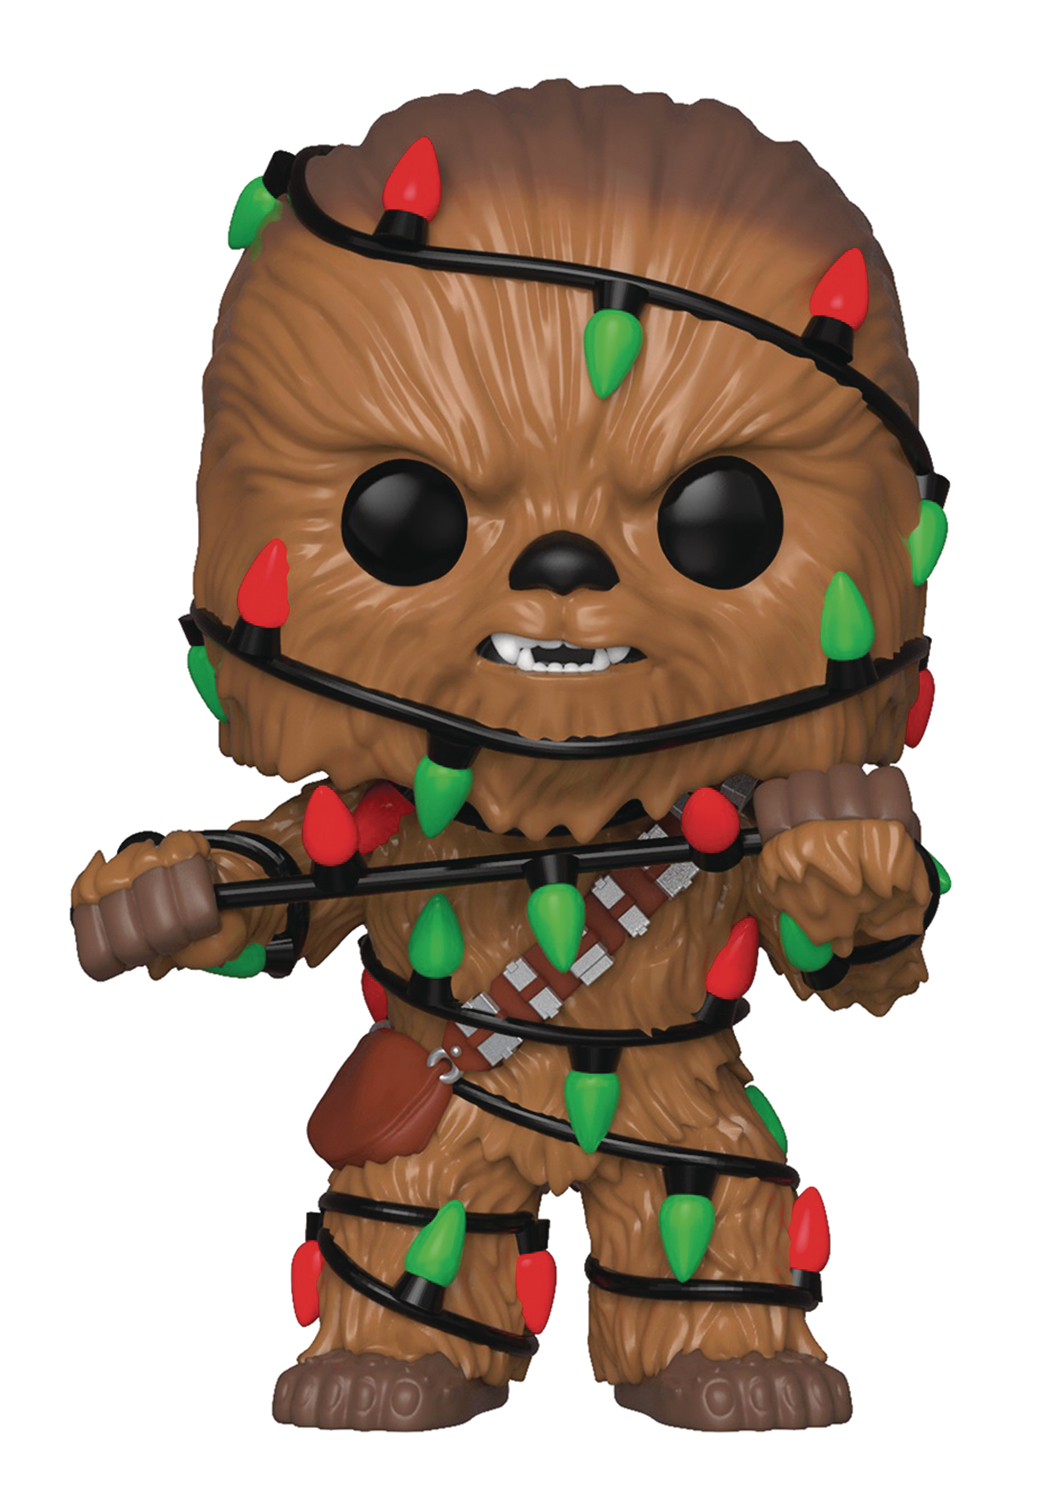 POP STAR WARS HOLIDAY CHEWBACCA VINYL FIG